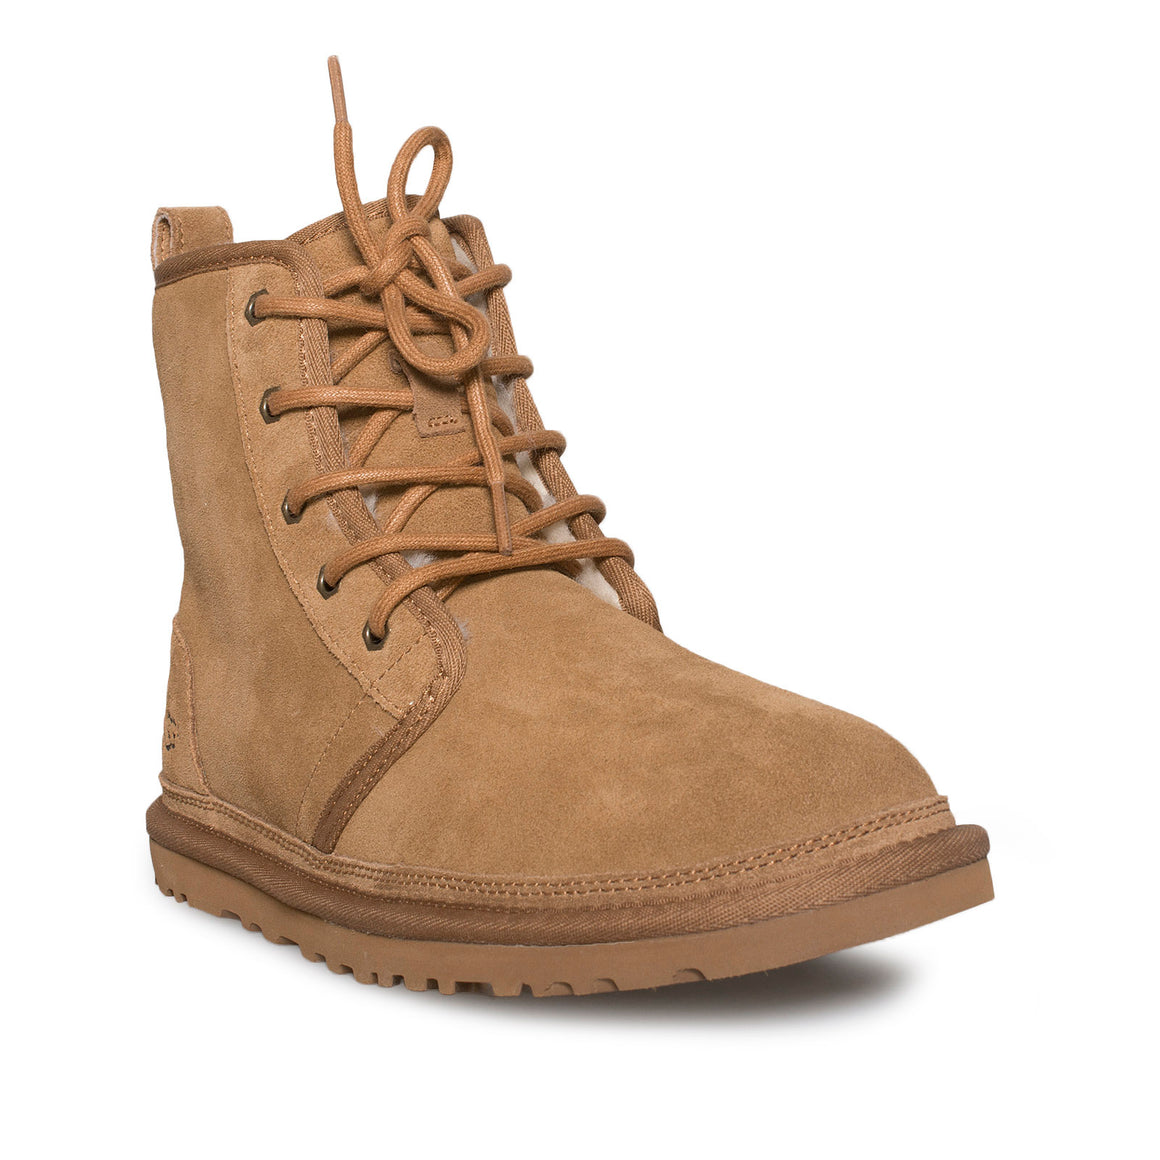 UGG Harkley Chestnut Boots - Youth